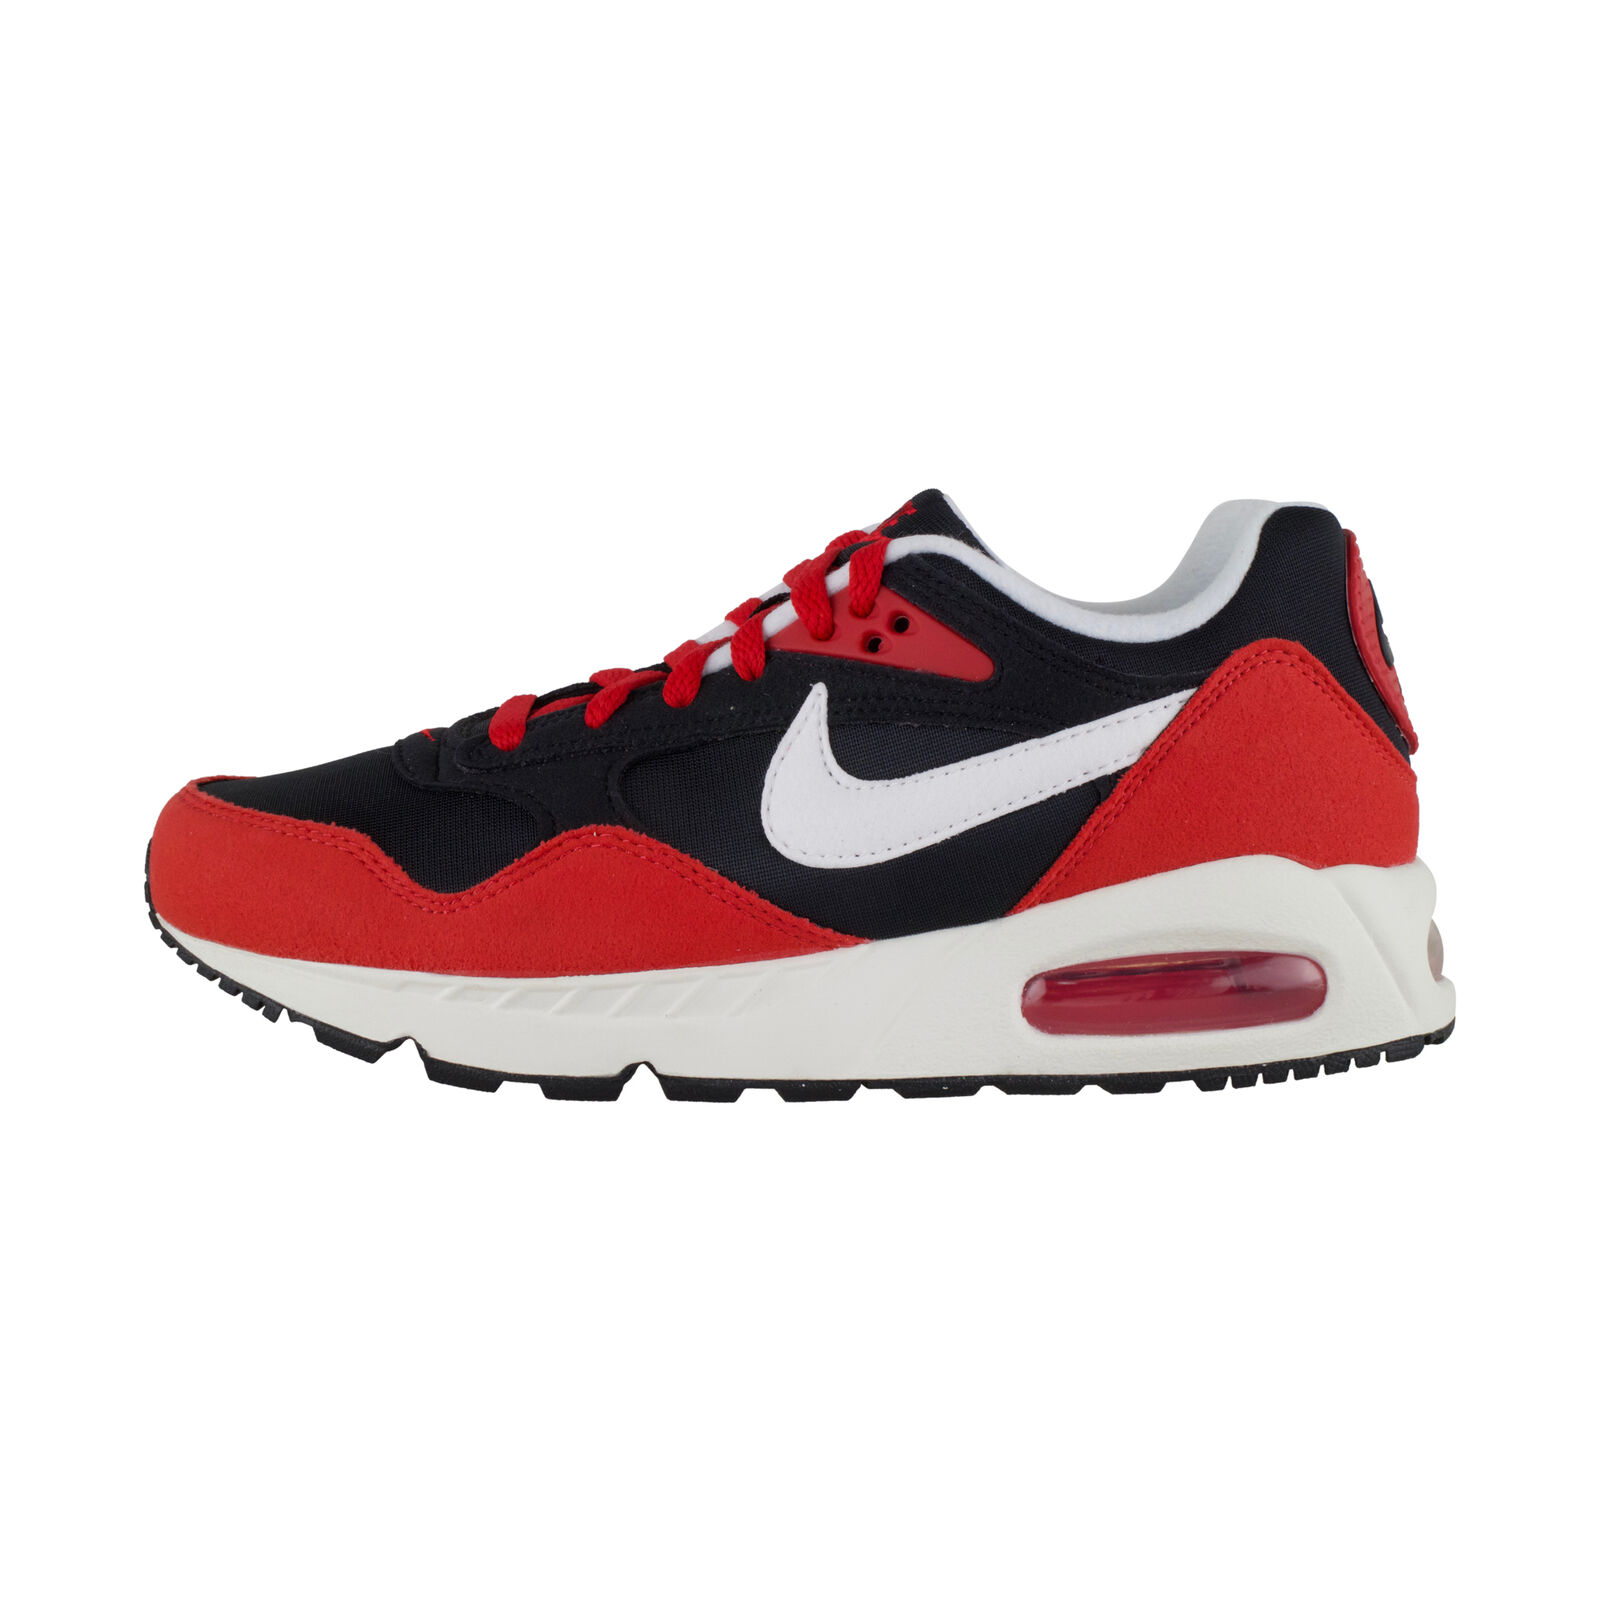 Details about Nike Air Max Correlate Women RedBlack 511417 015